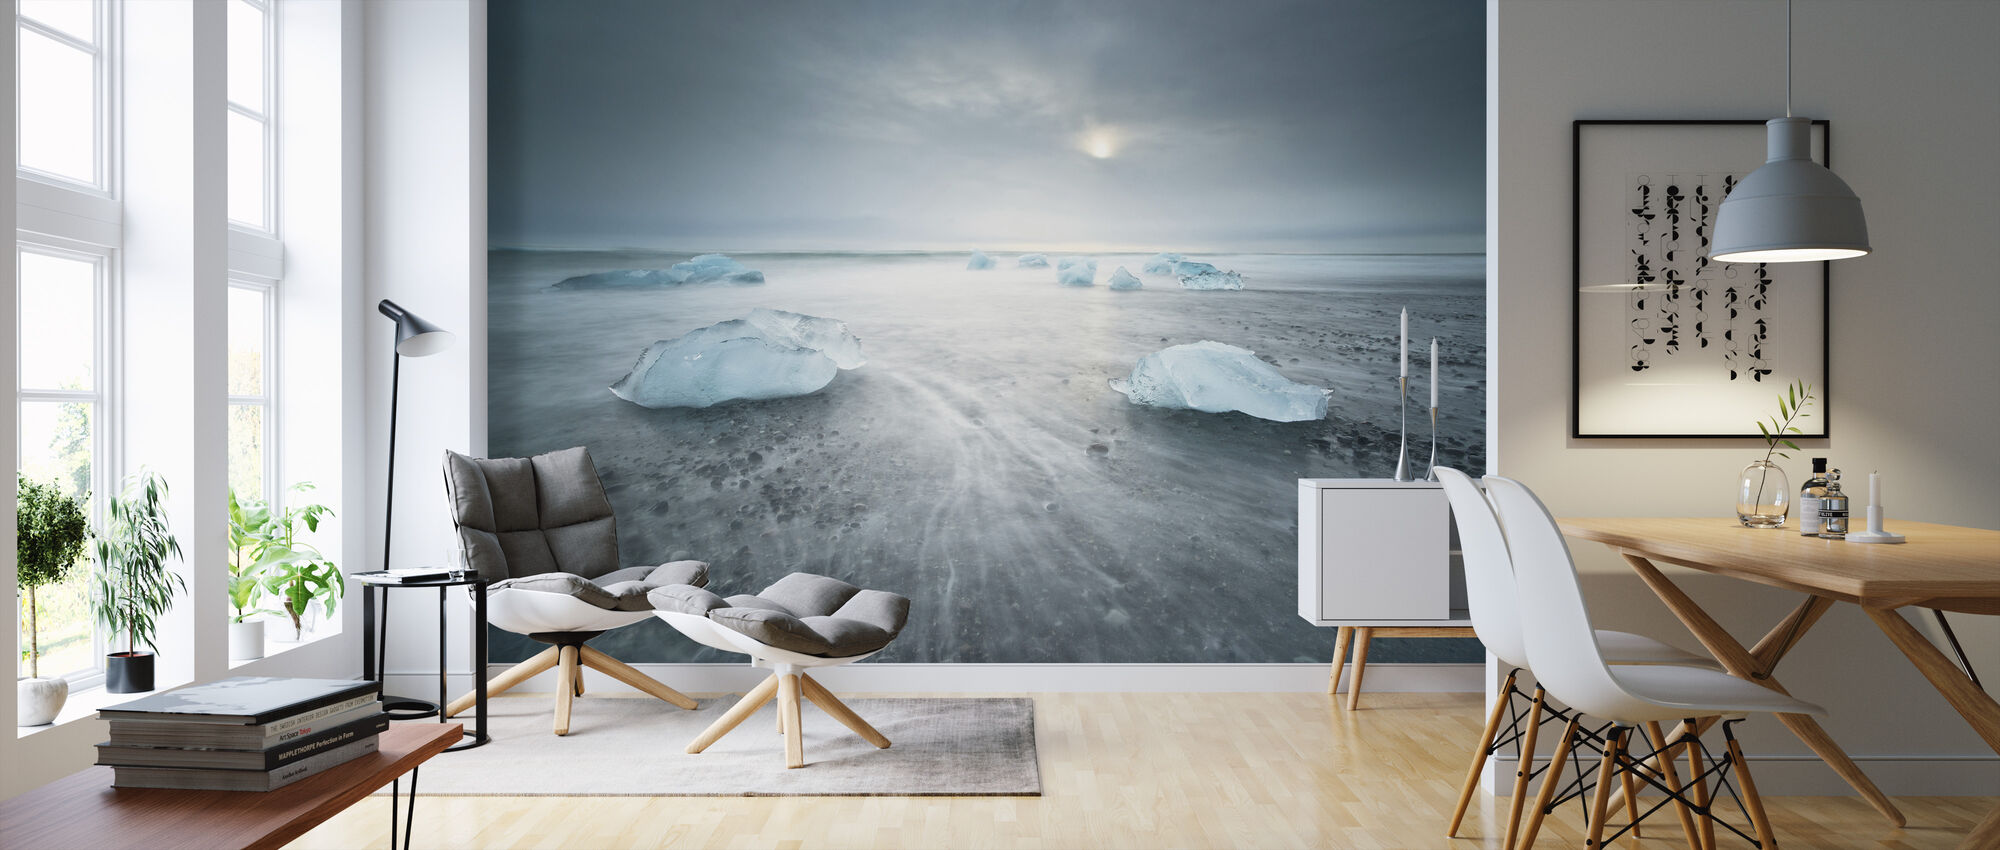 Low Tide - Wallpaper - Living Room